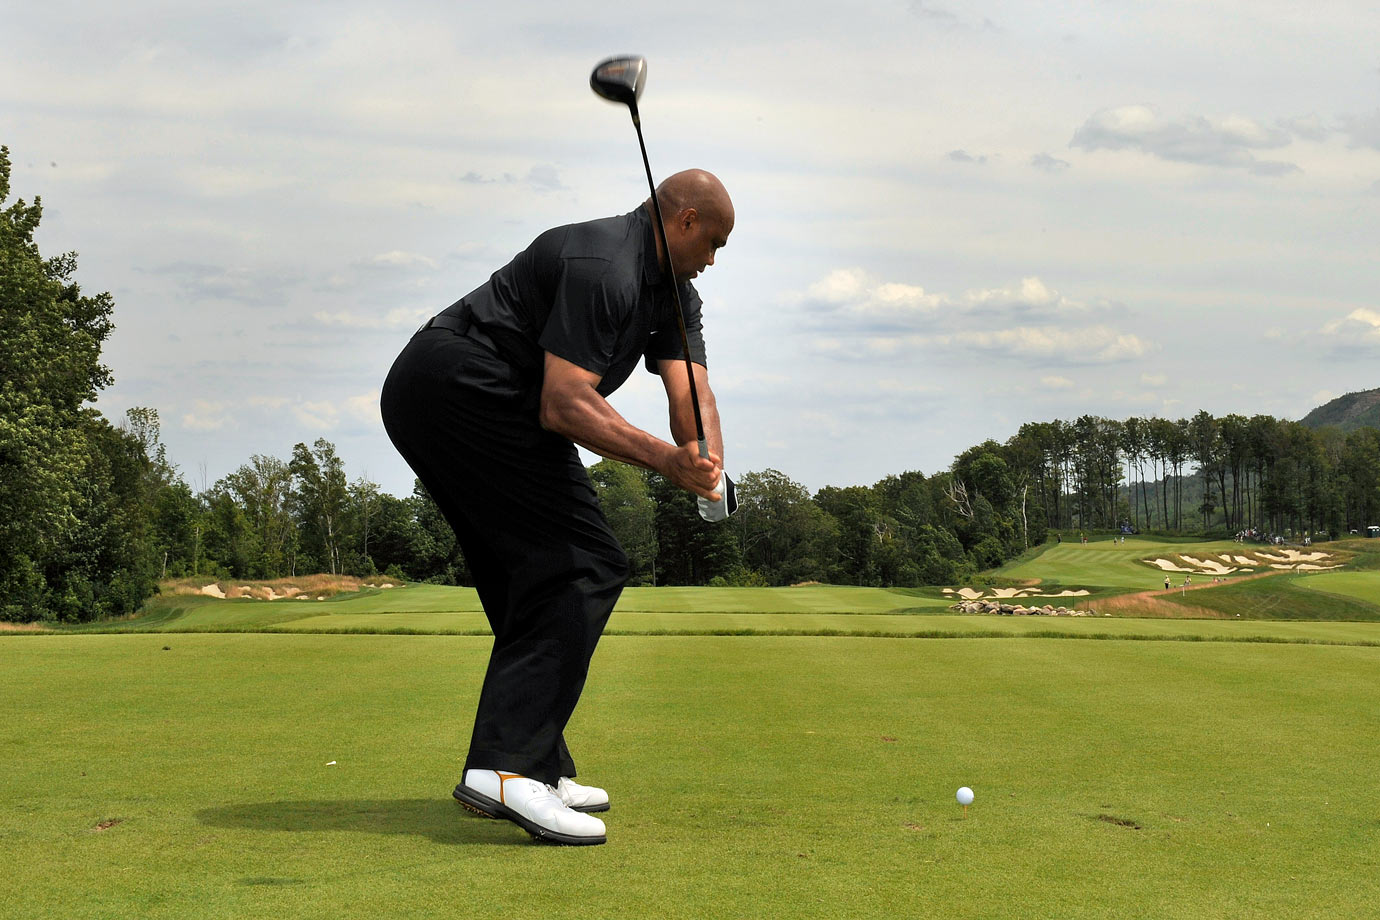 Charles Barkley and his famously ugly golf shot at the Ford Wayne Gretzky Classic in Clarksburg, Ontario, Canada.